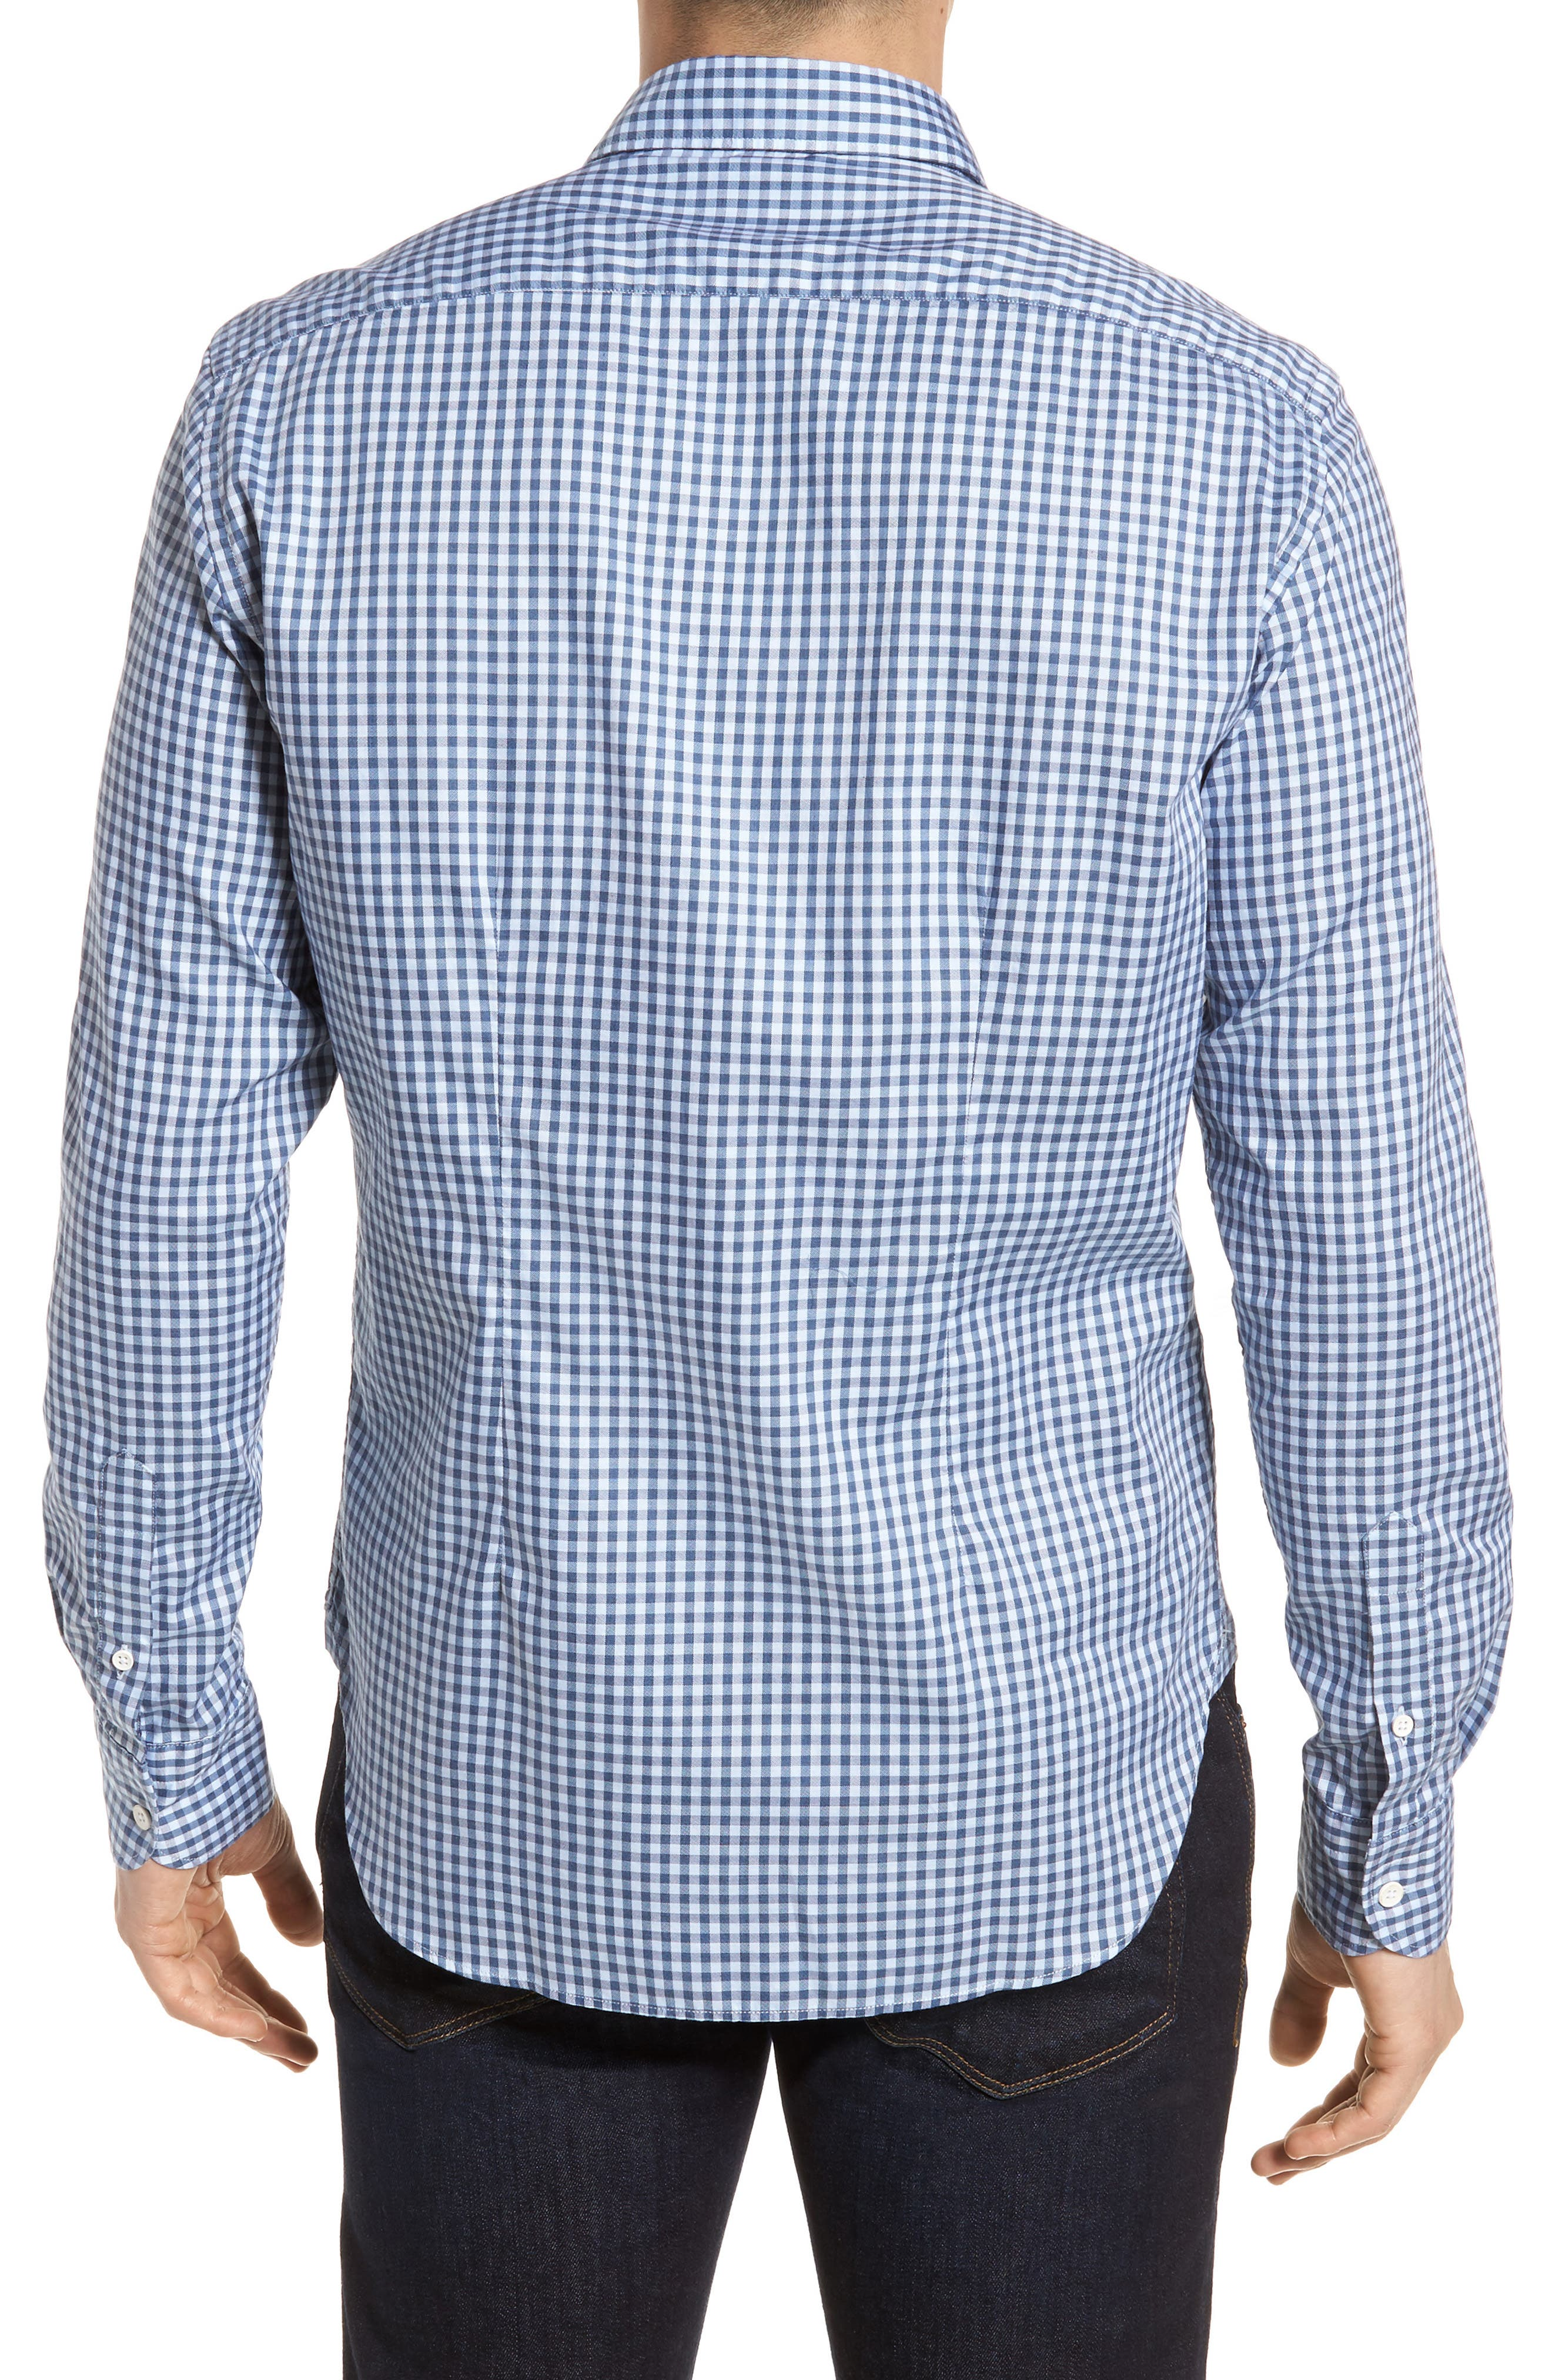 Tailored Fit Gingham Sport Shirt,                             Alternate thumbnail 2, color,                             400